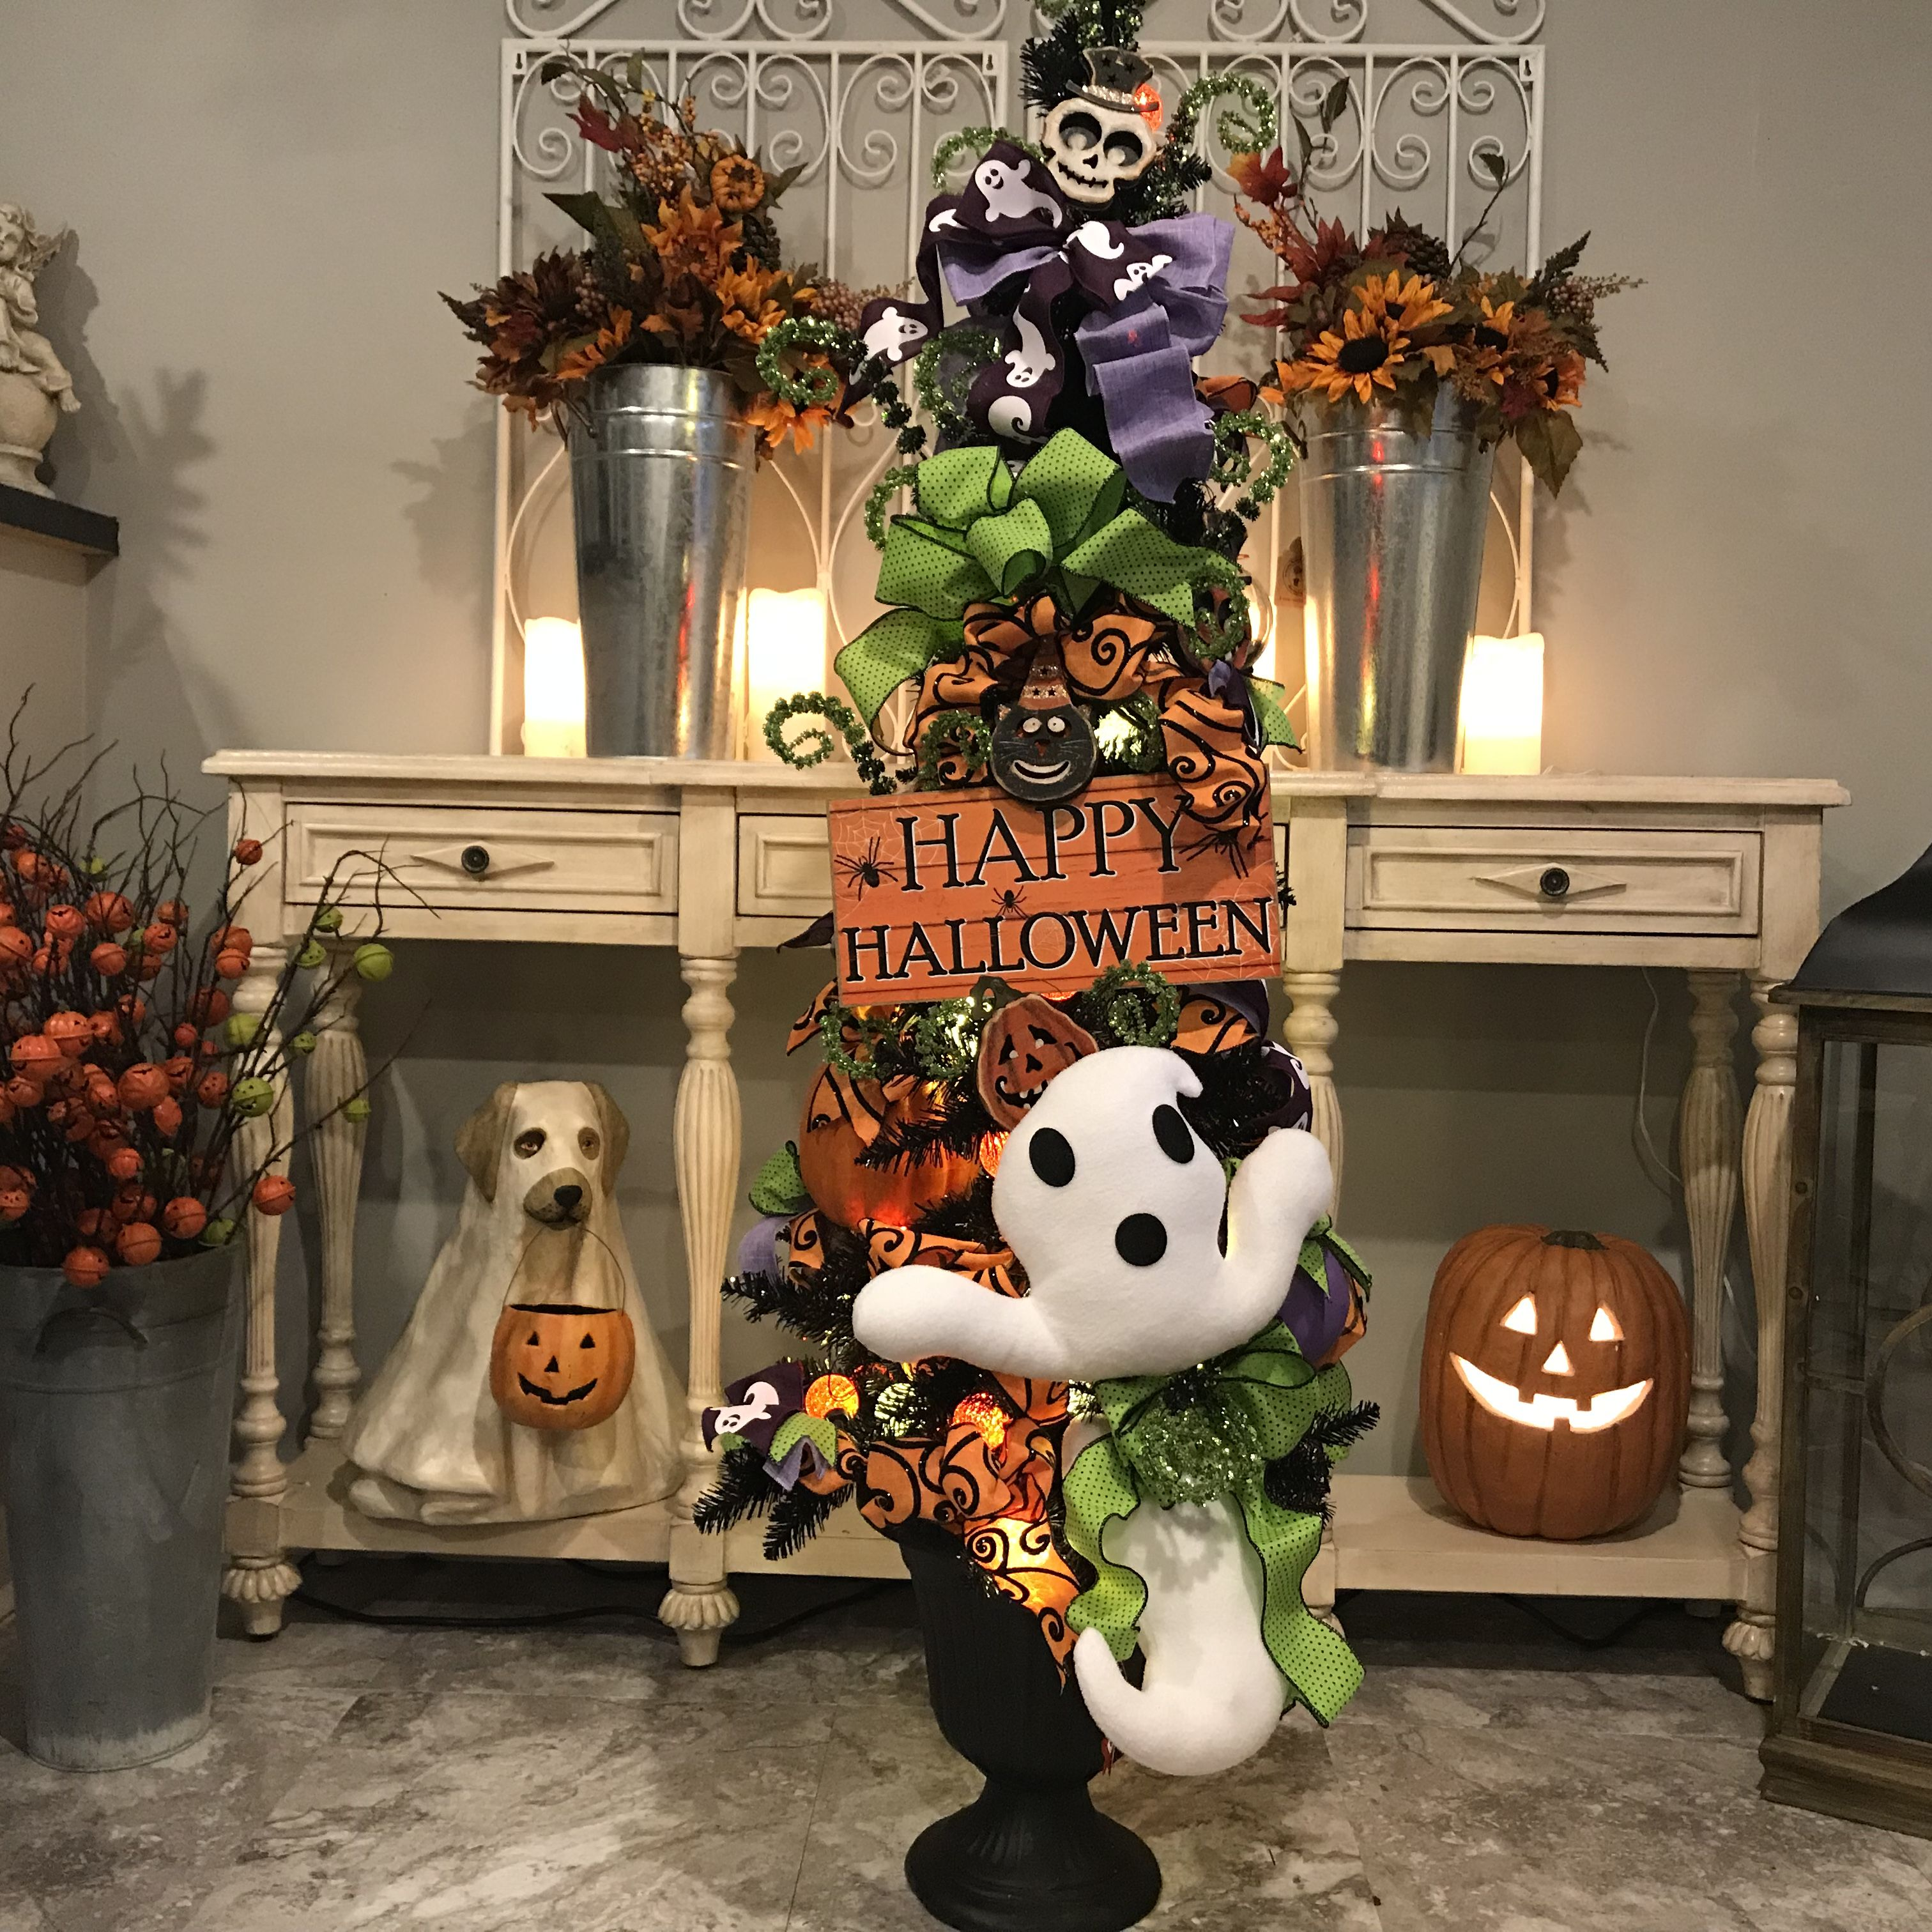 Halloween Tree Decorated With Items Found Online At Shelley B Home And Holiday Shown On Our 5ft Black Halloween